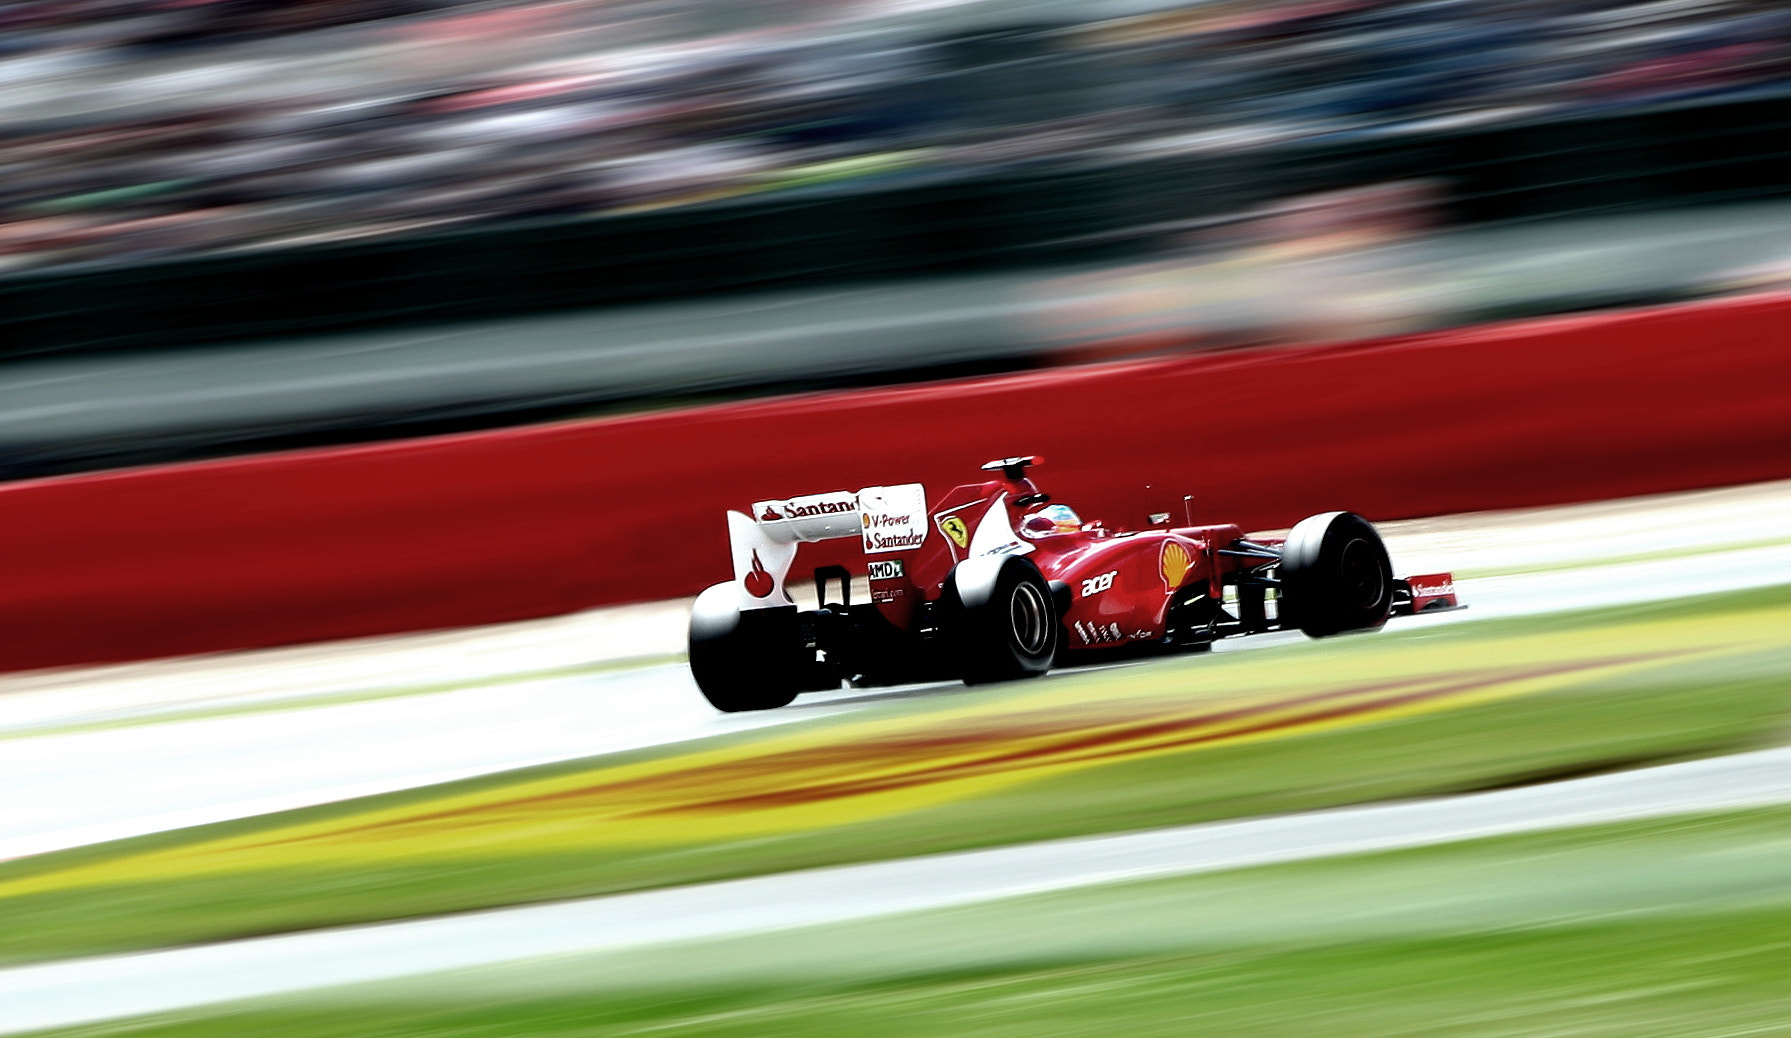 Photograph Alonso by Silverlight-images on 500px